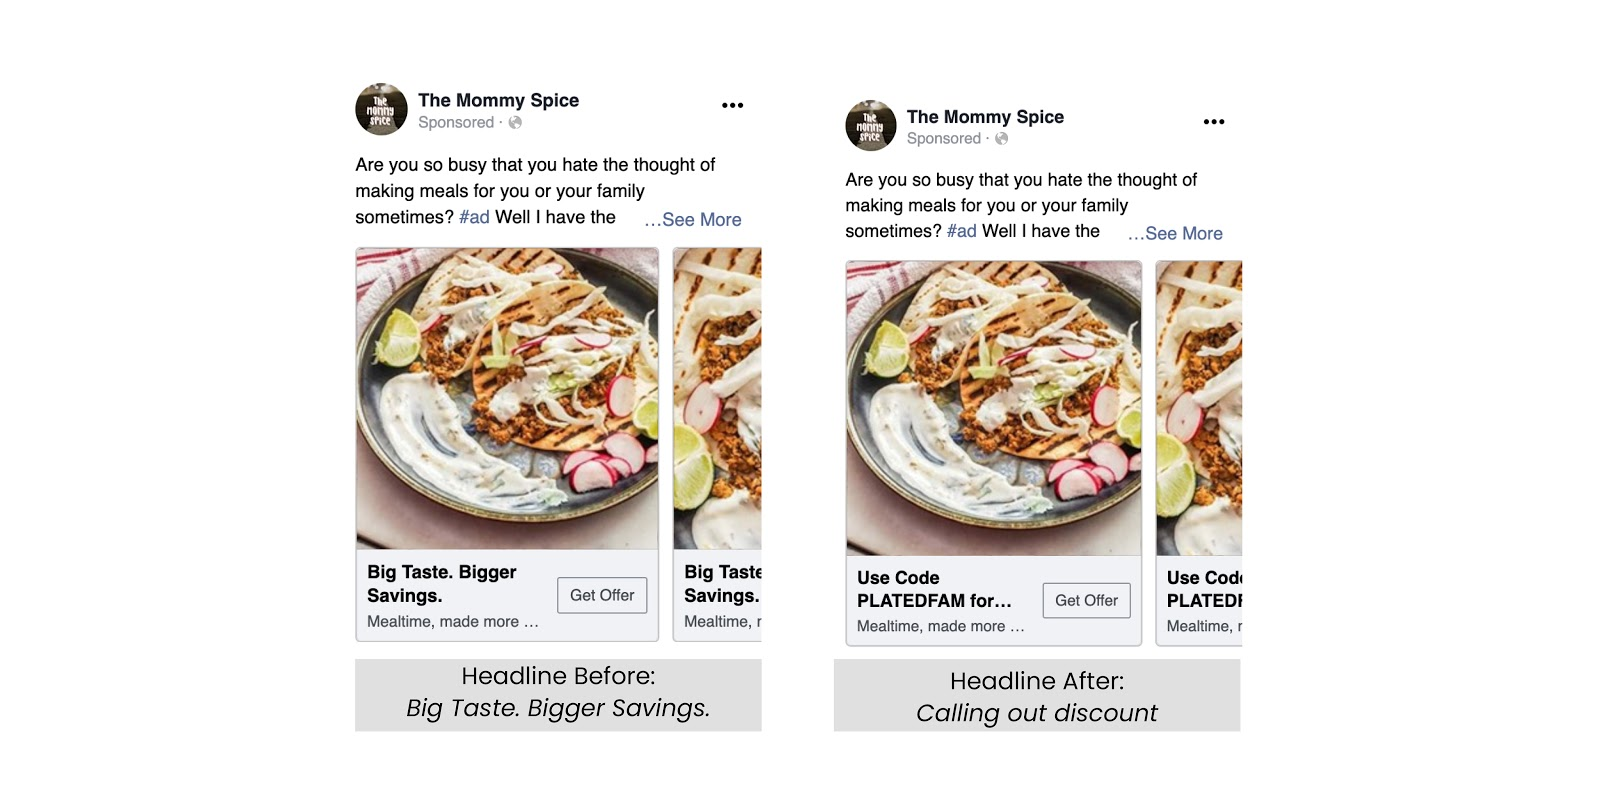 How to edit and test headlines for influencer ads